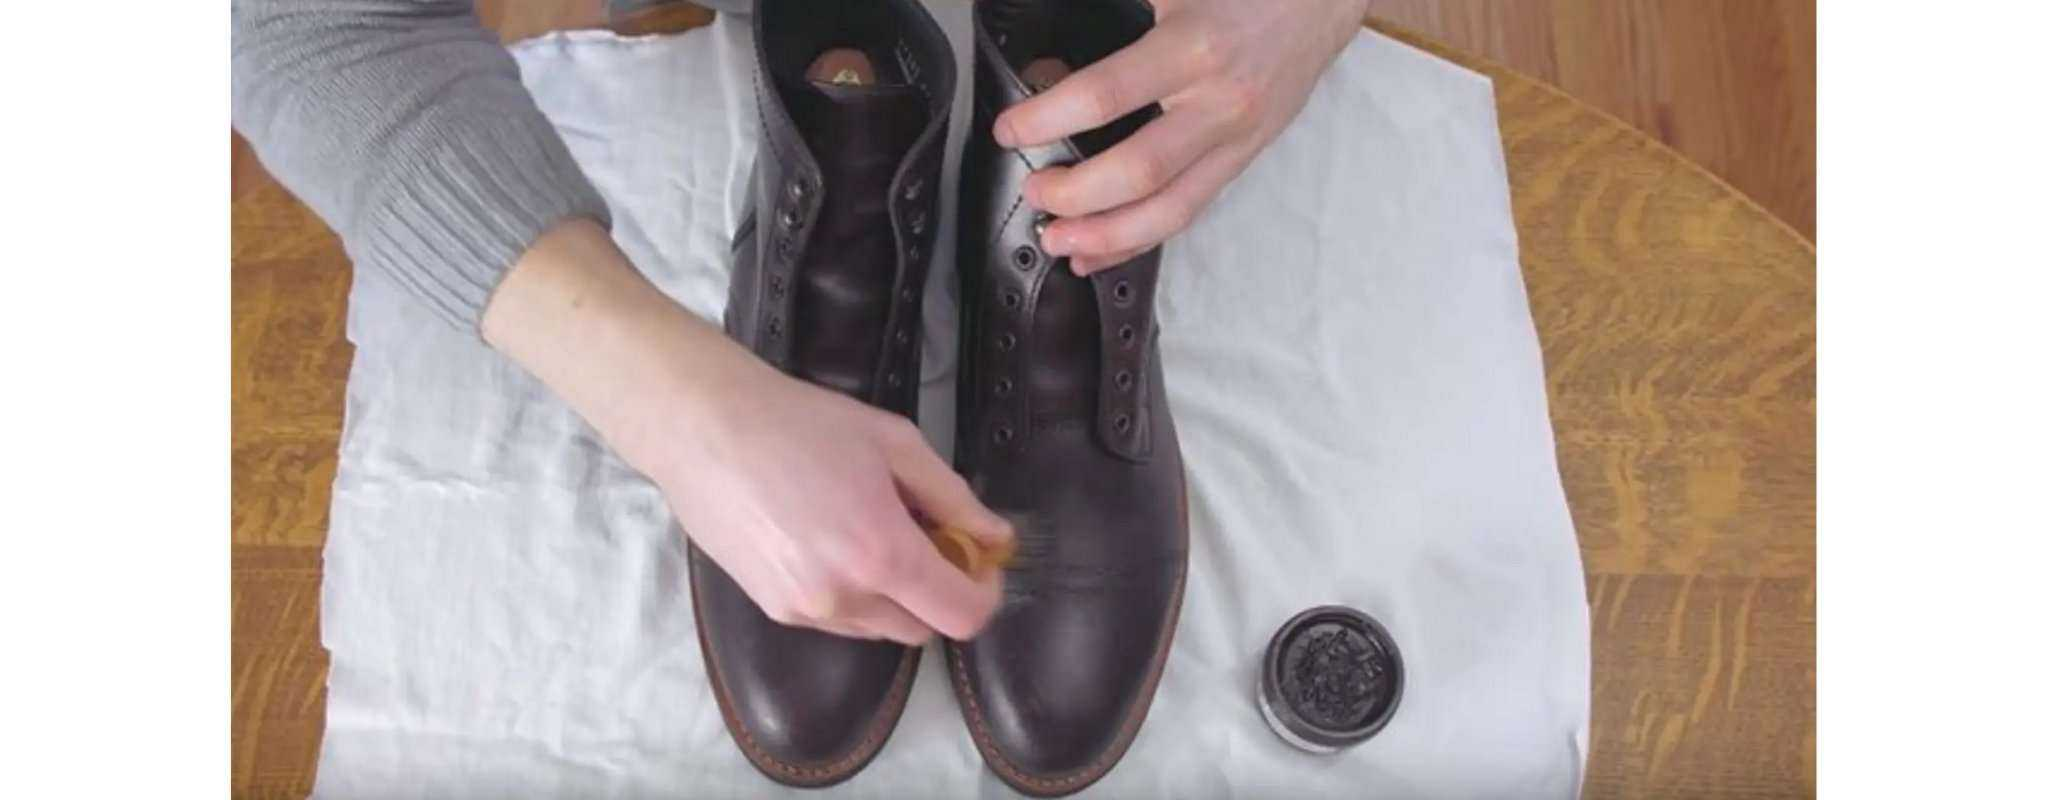 polish leather boots with wax